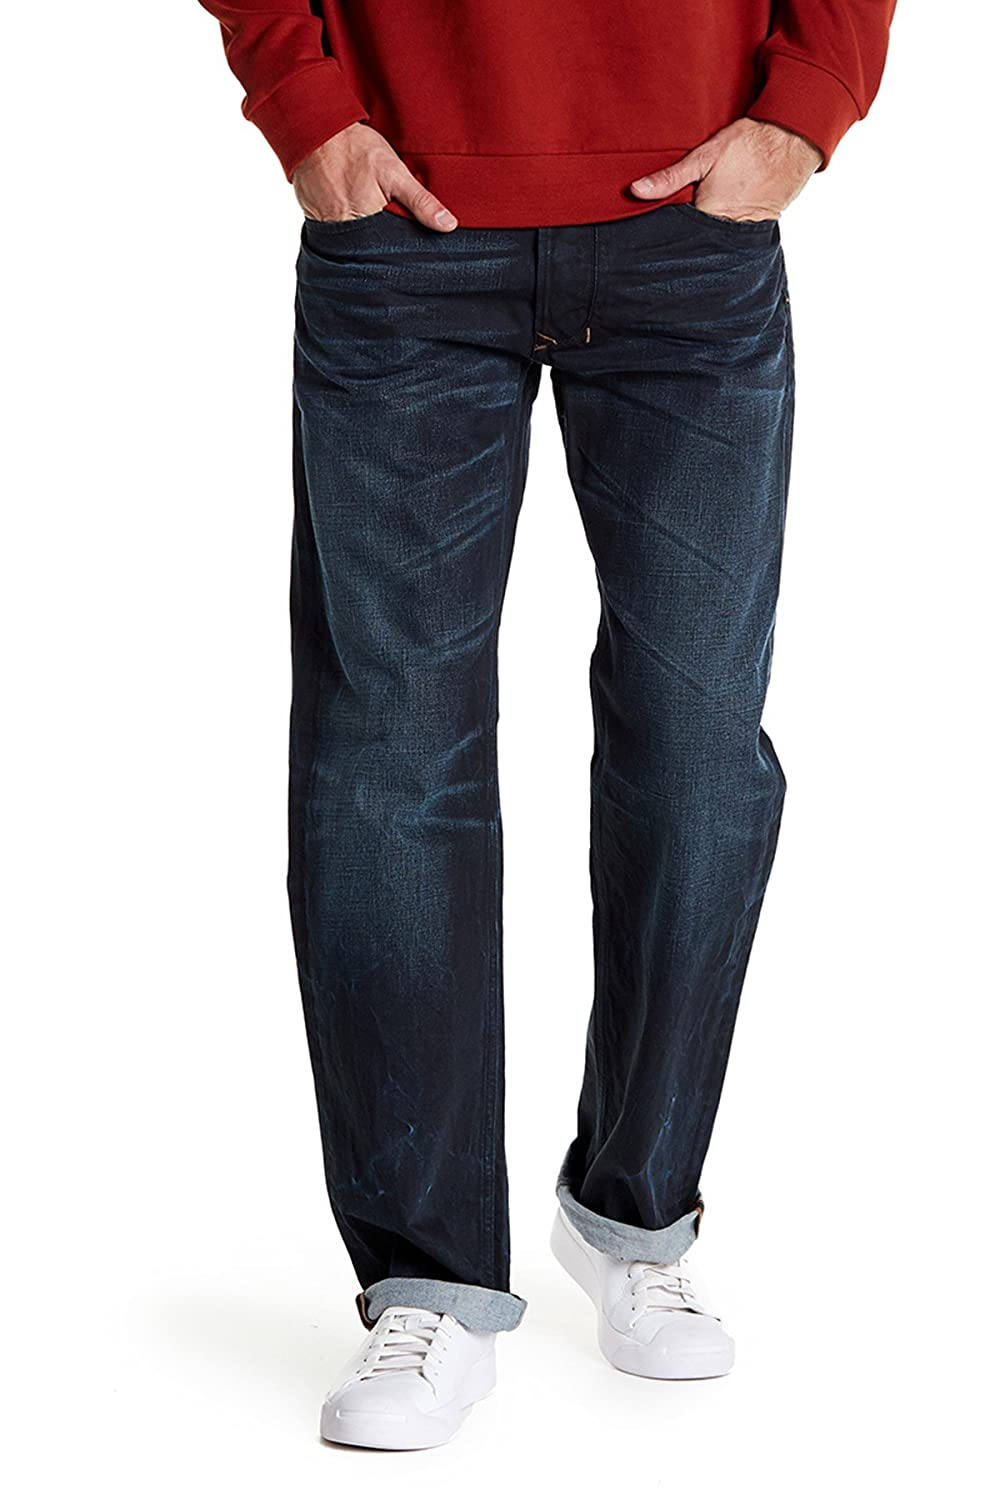 Diesel Larkee Mens Regular Straight Denim Jeans R823I Dark Wash 34 Inseam